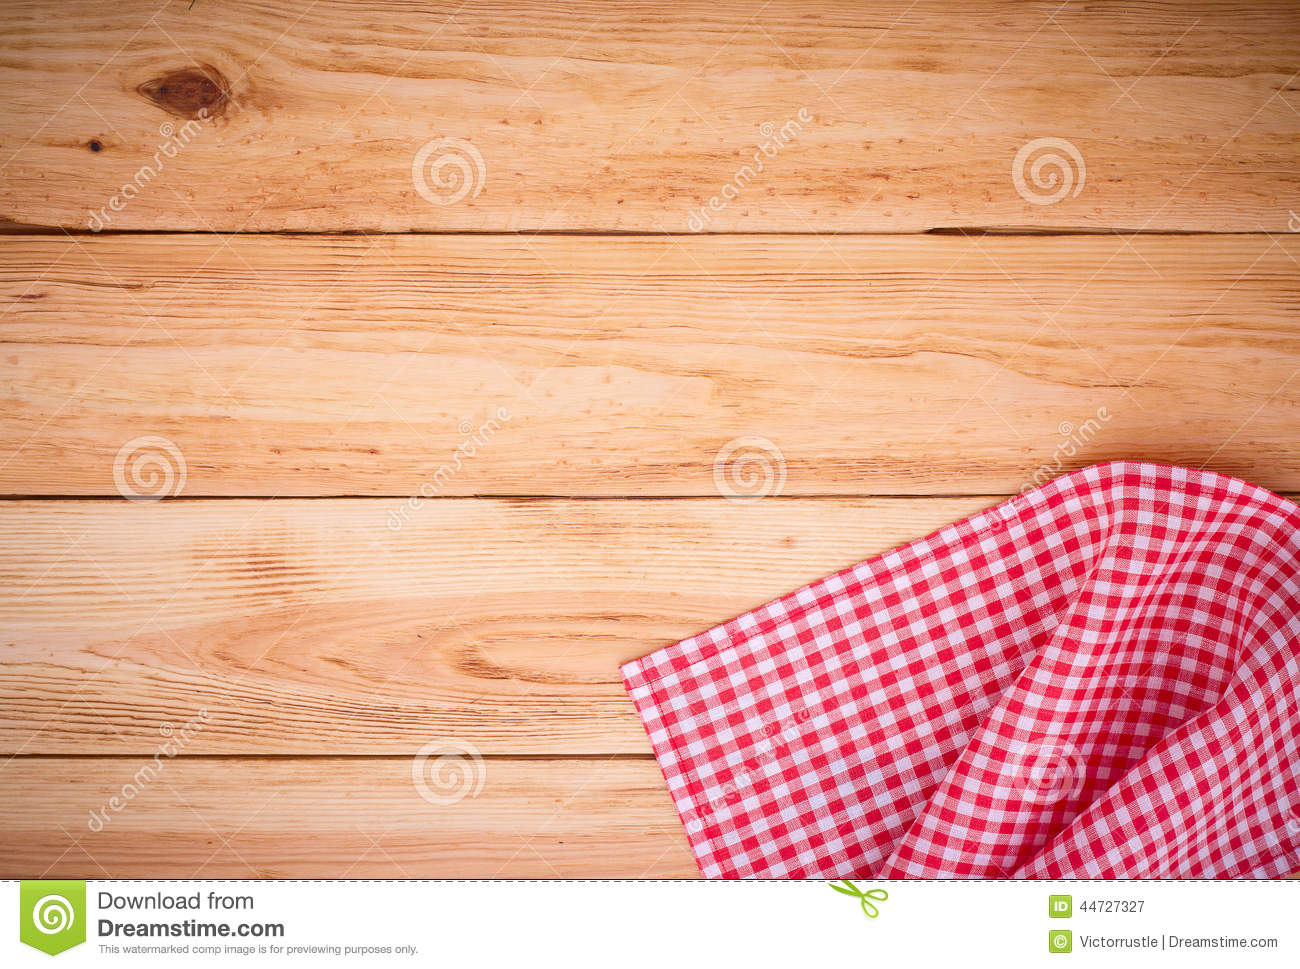 Wooden Texture Background And Tablecloth Stock Photo - Image: 44727327